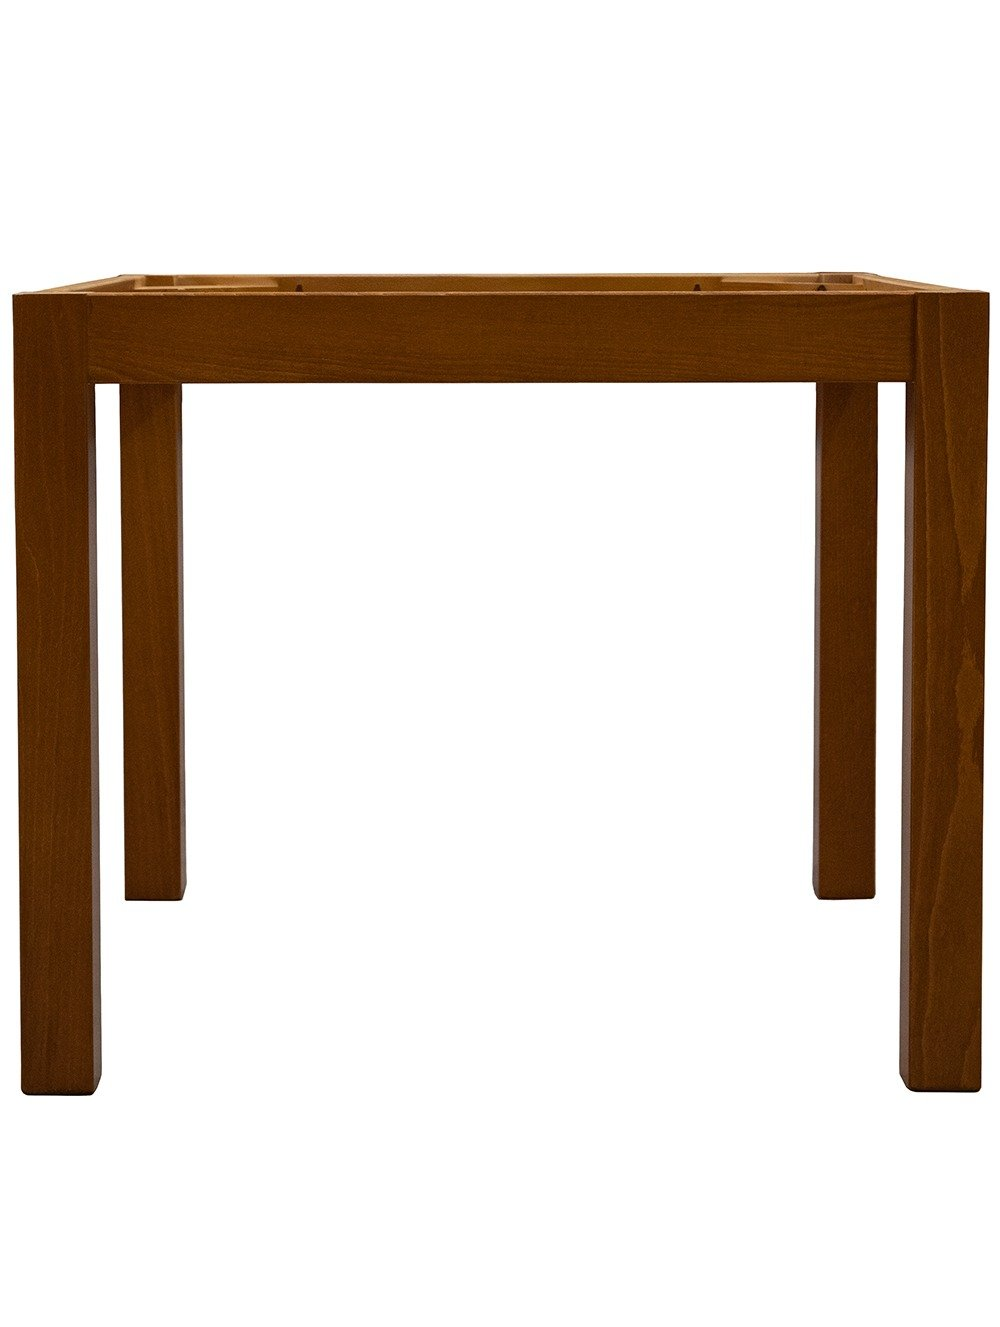 Straight 4 Leg Dining Table from the front